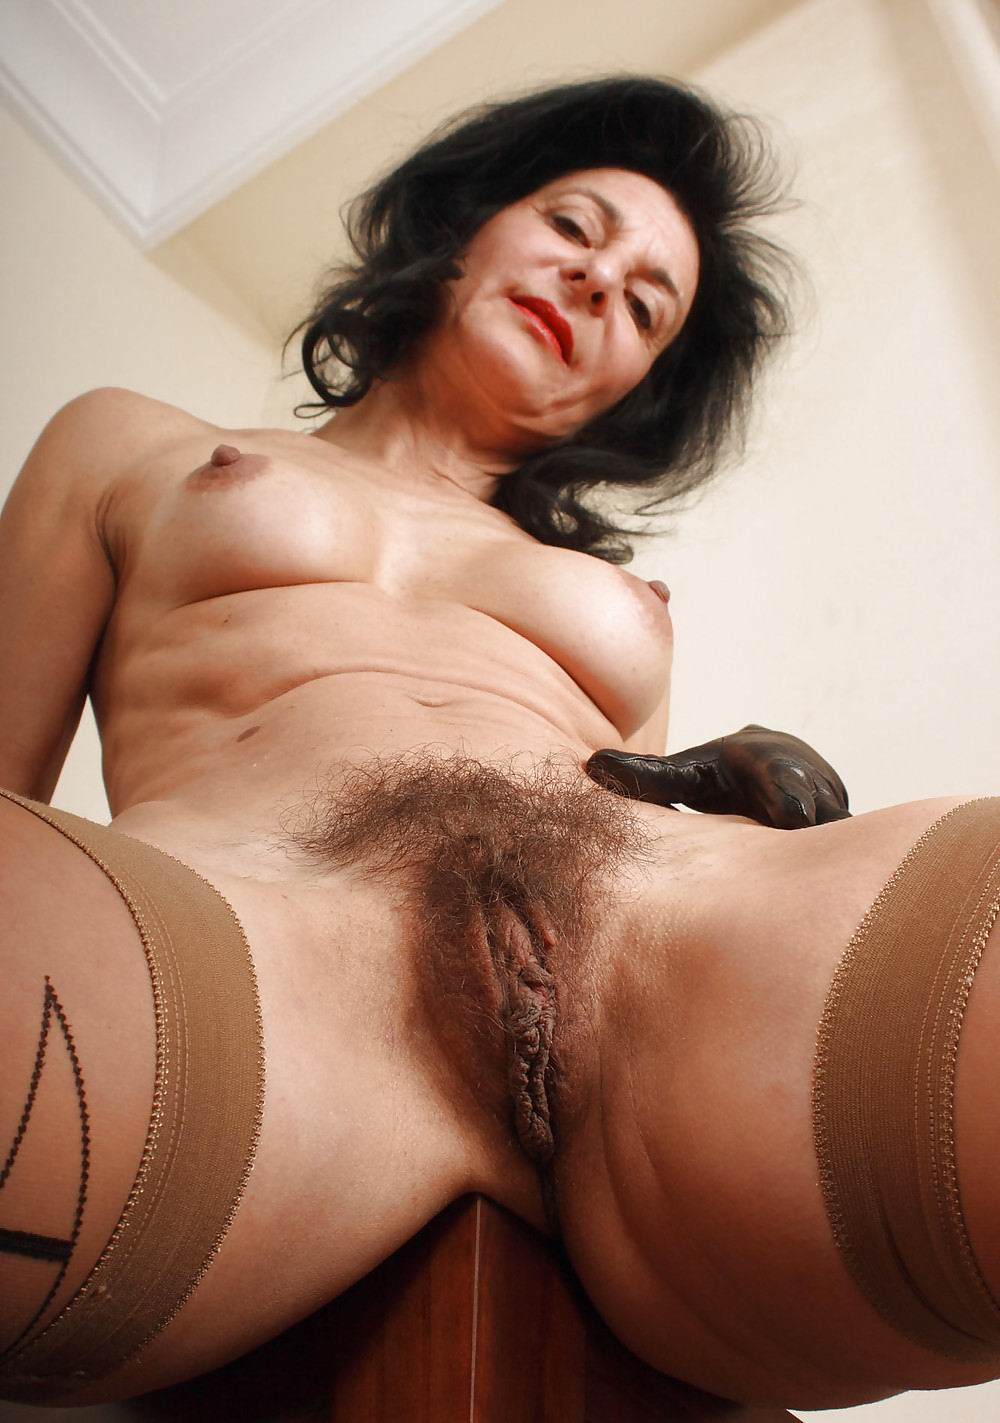 Begging mature sex wife for